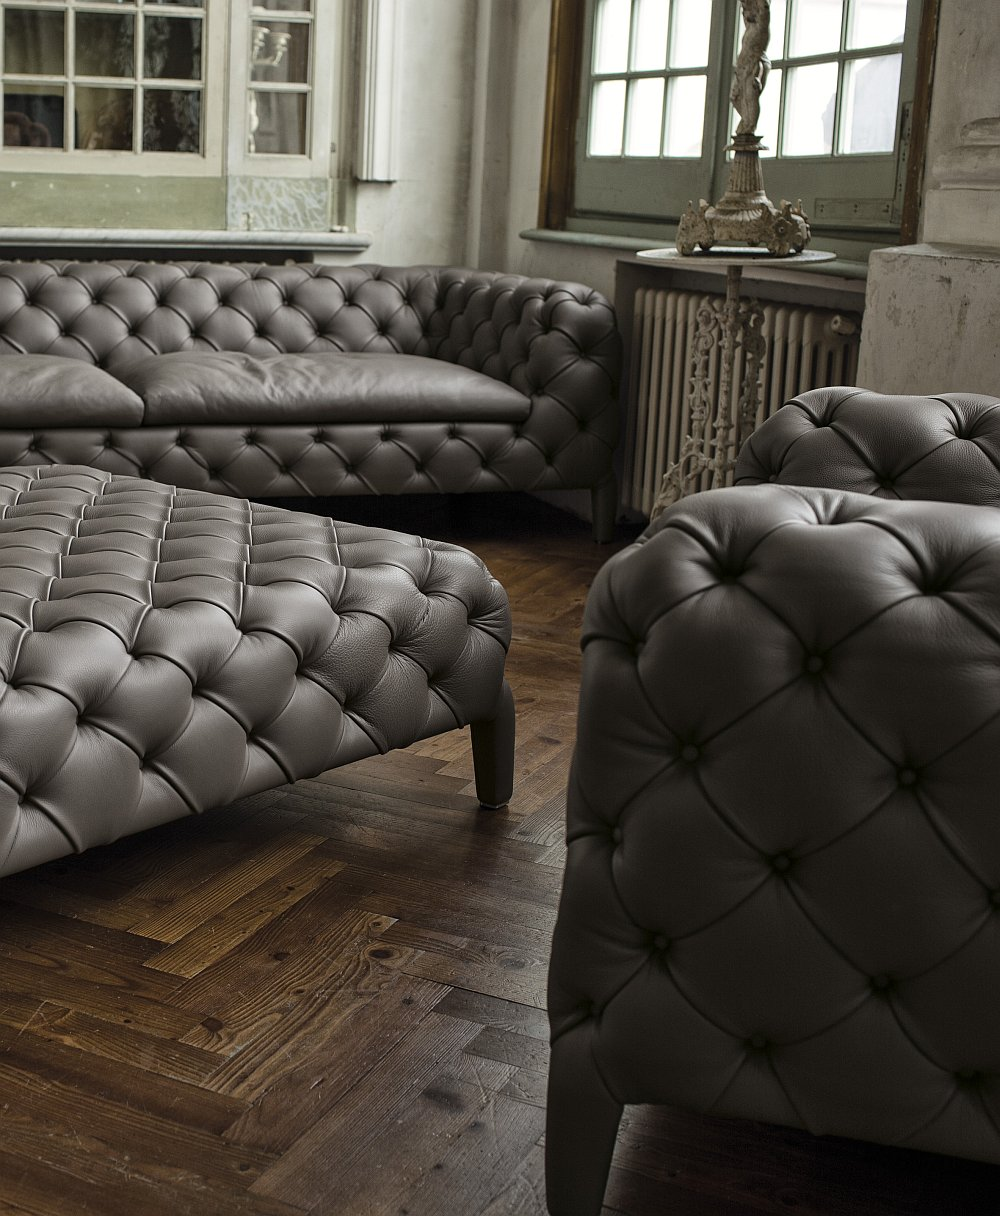 Combine the Windsor pouf with for decor for a snazzy setting